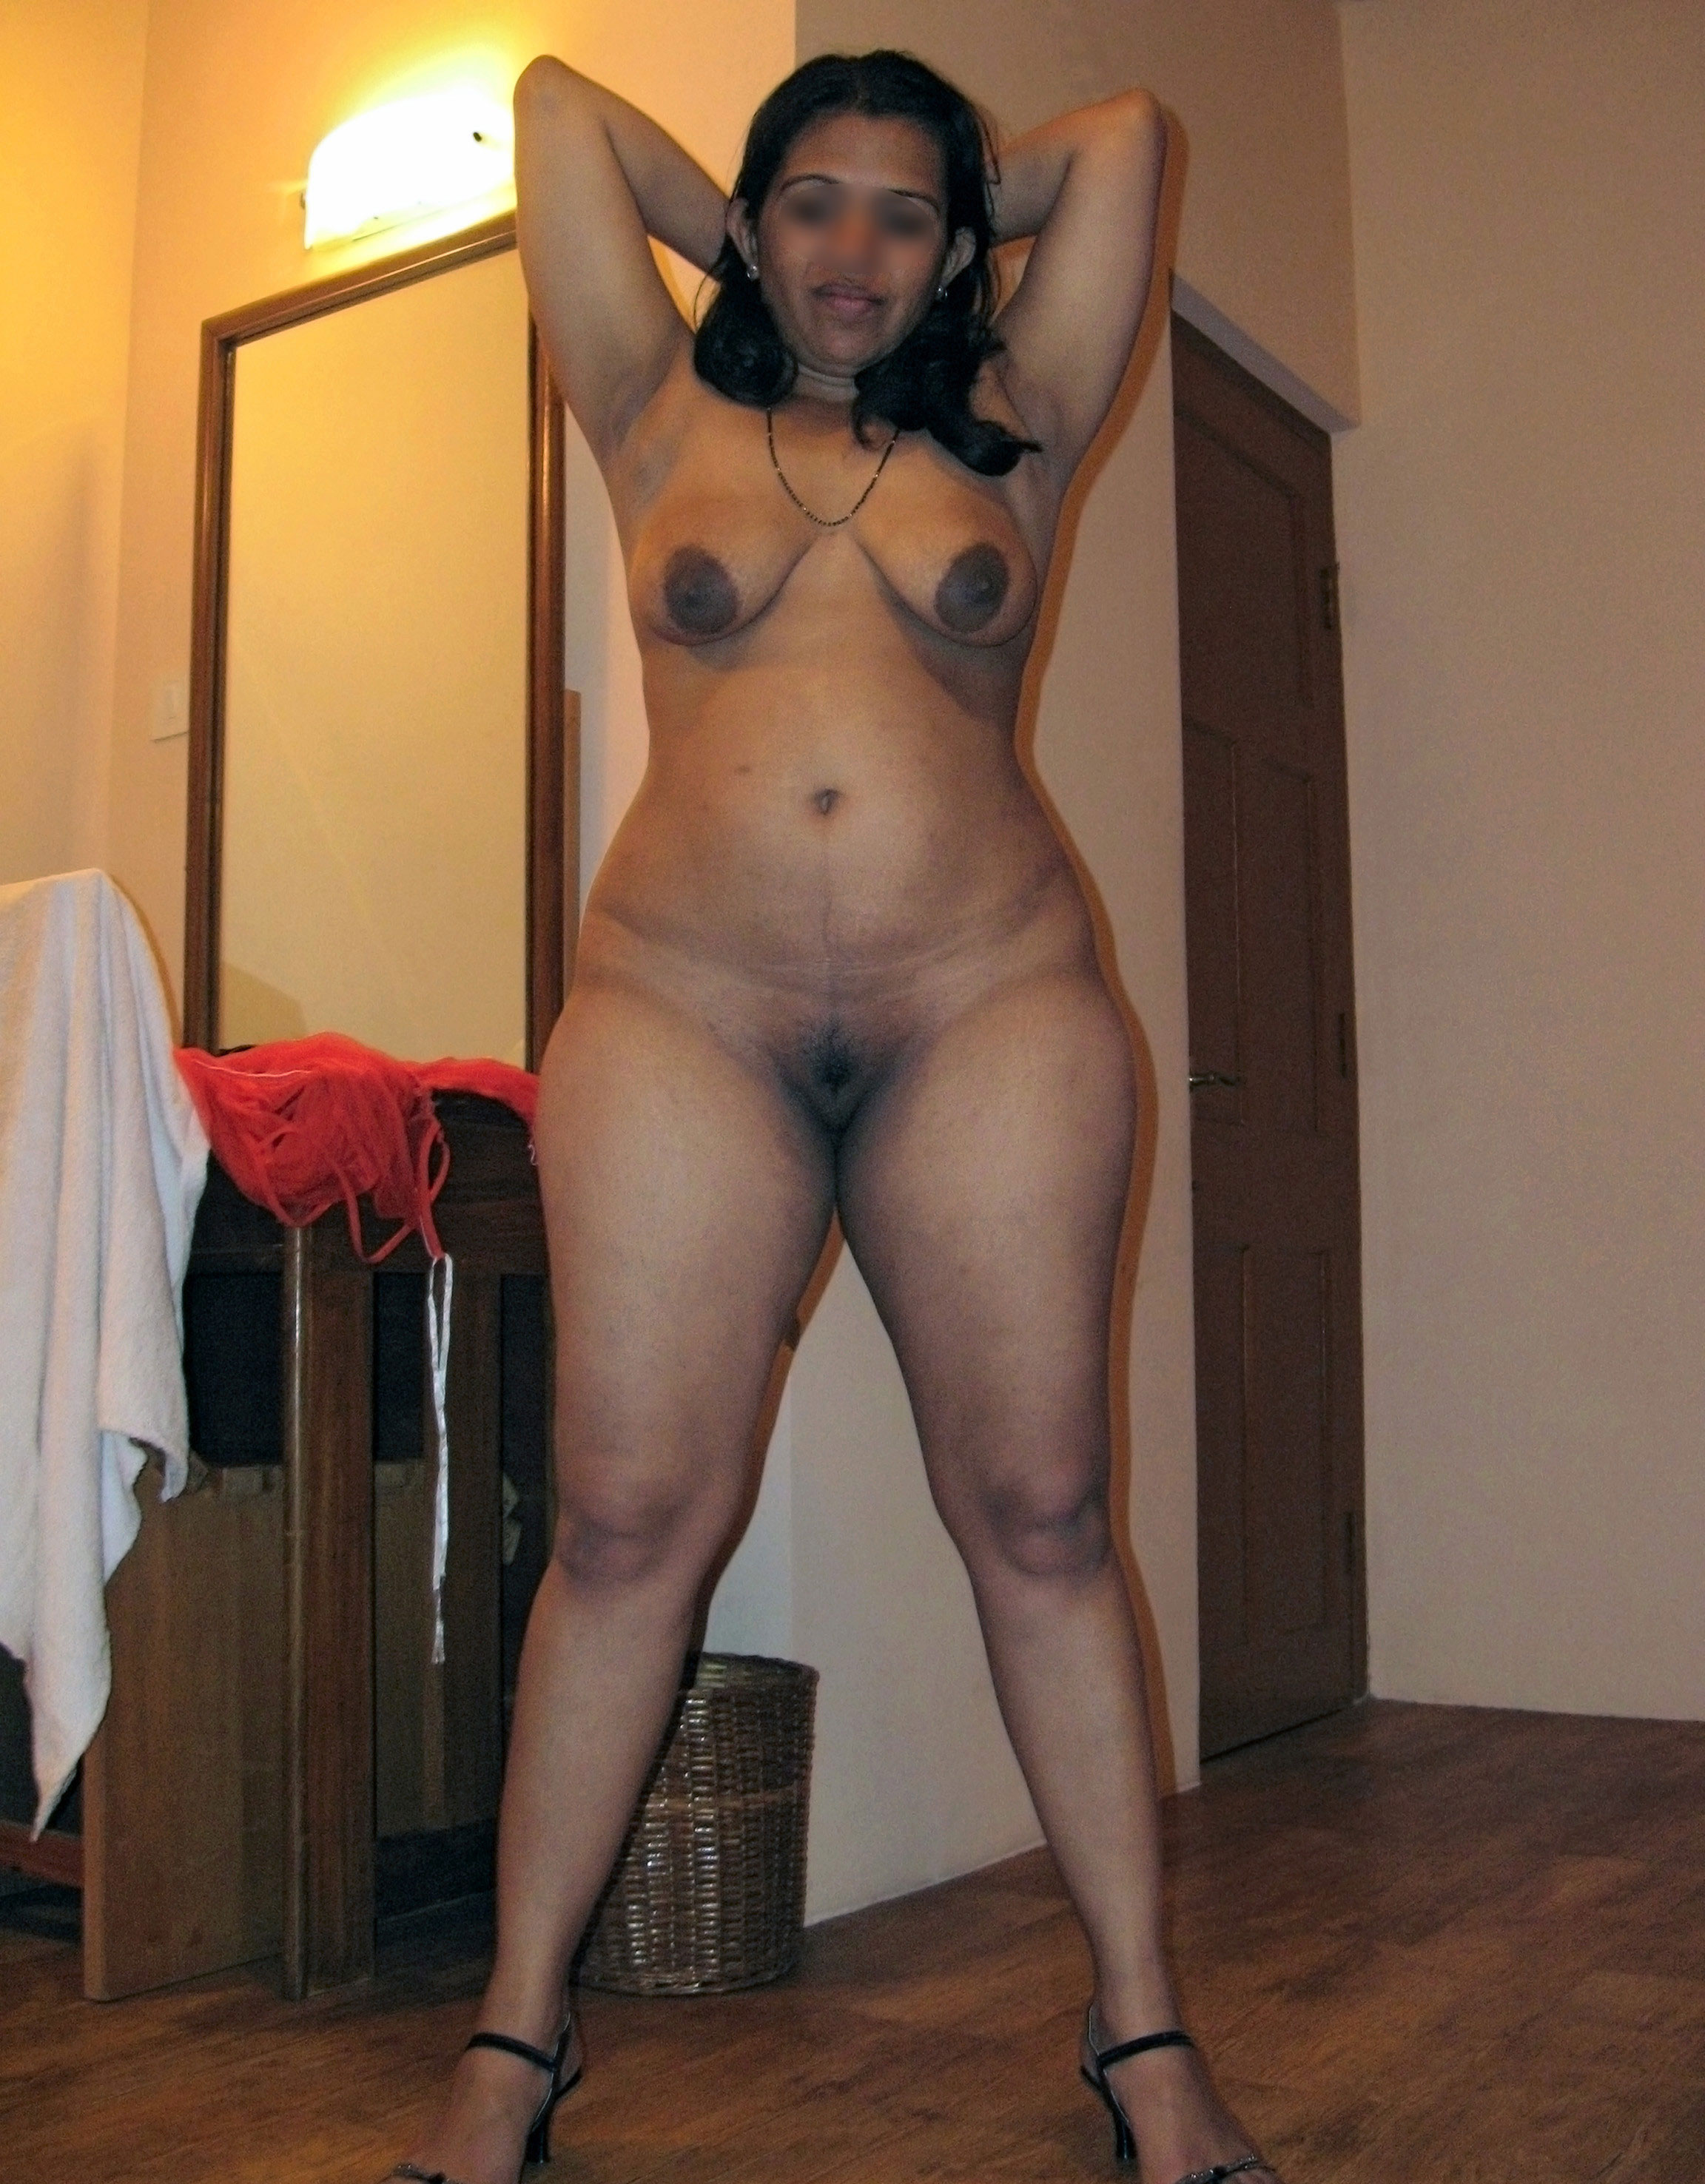 Hot indian girl with fat cunt consider, that